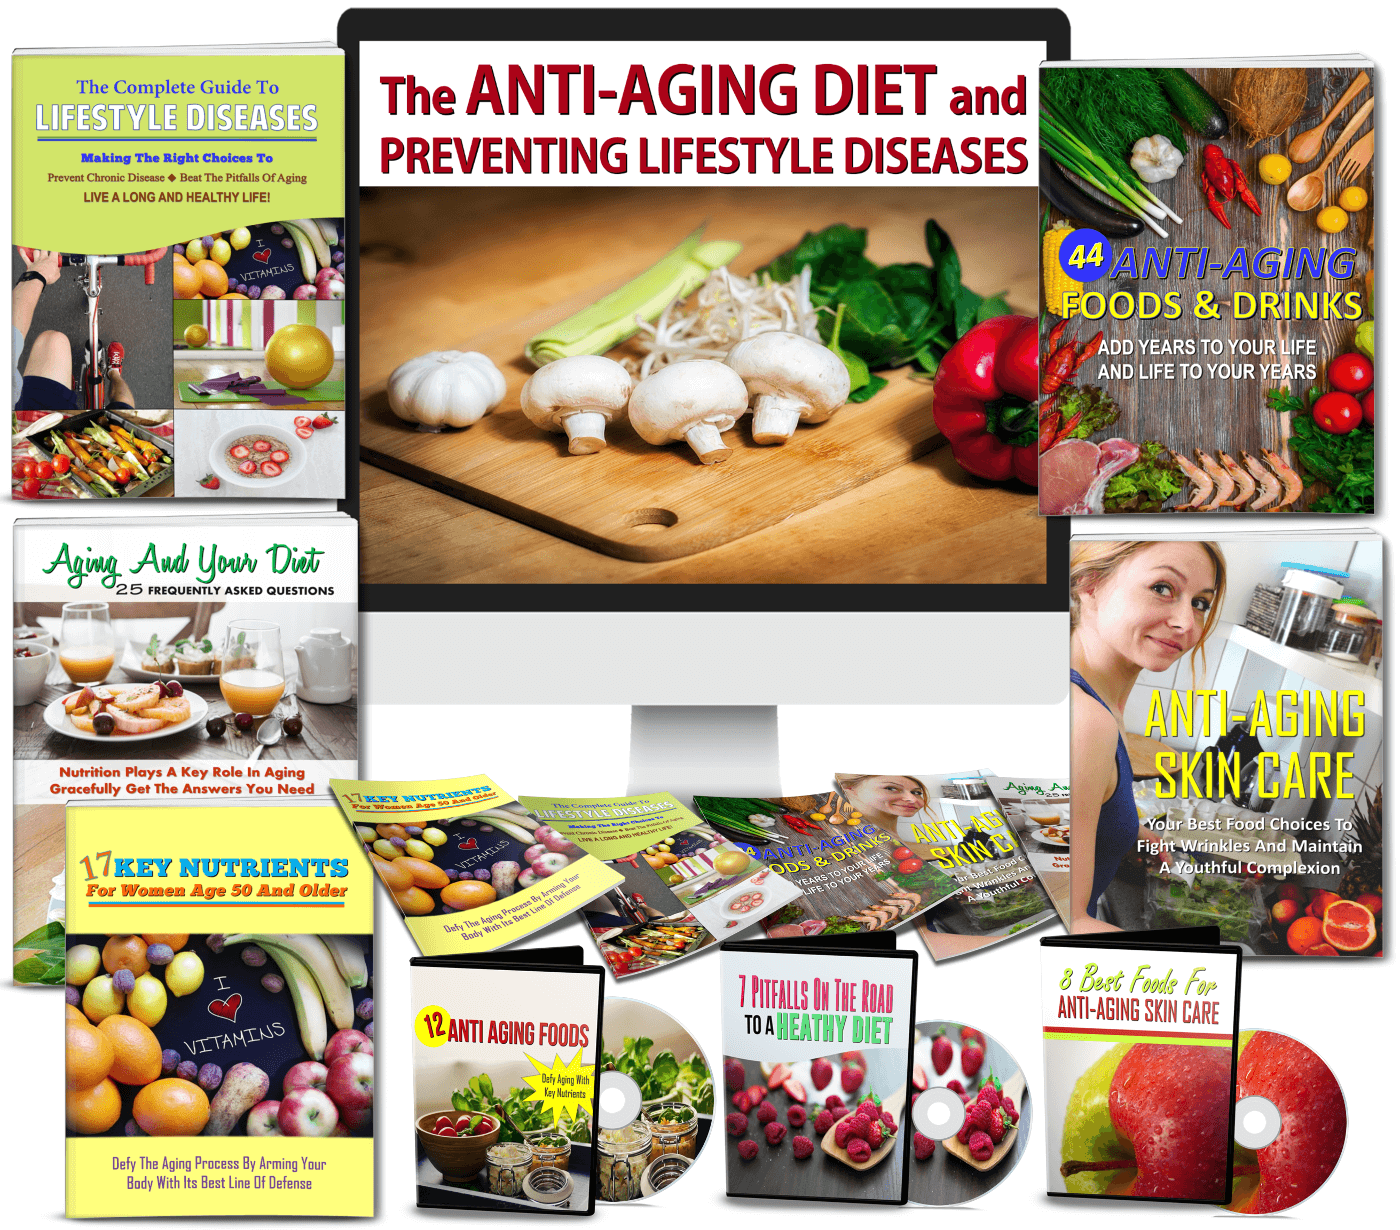 New Lifestyle Diet Reviews: Does It Really Work? | Trusted ...